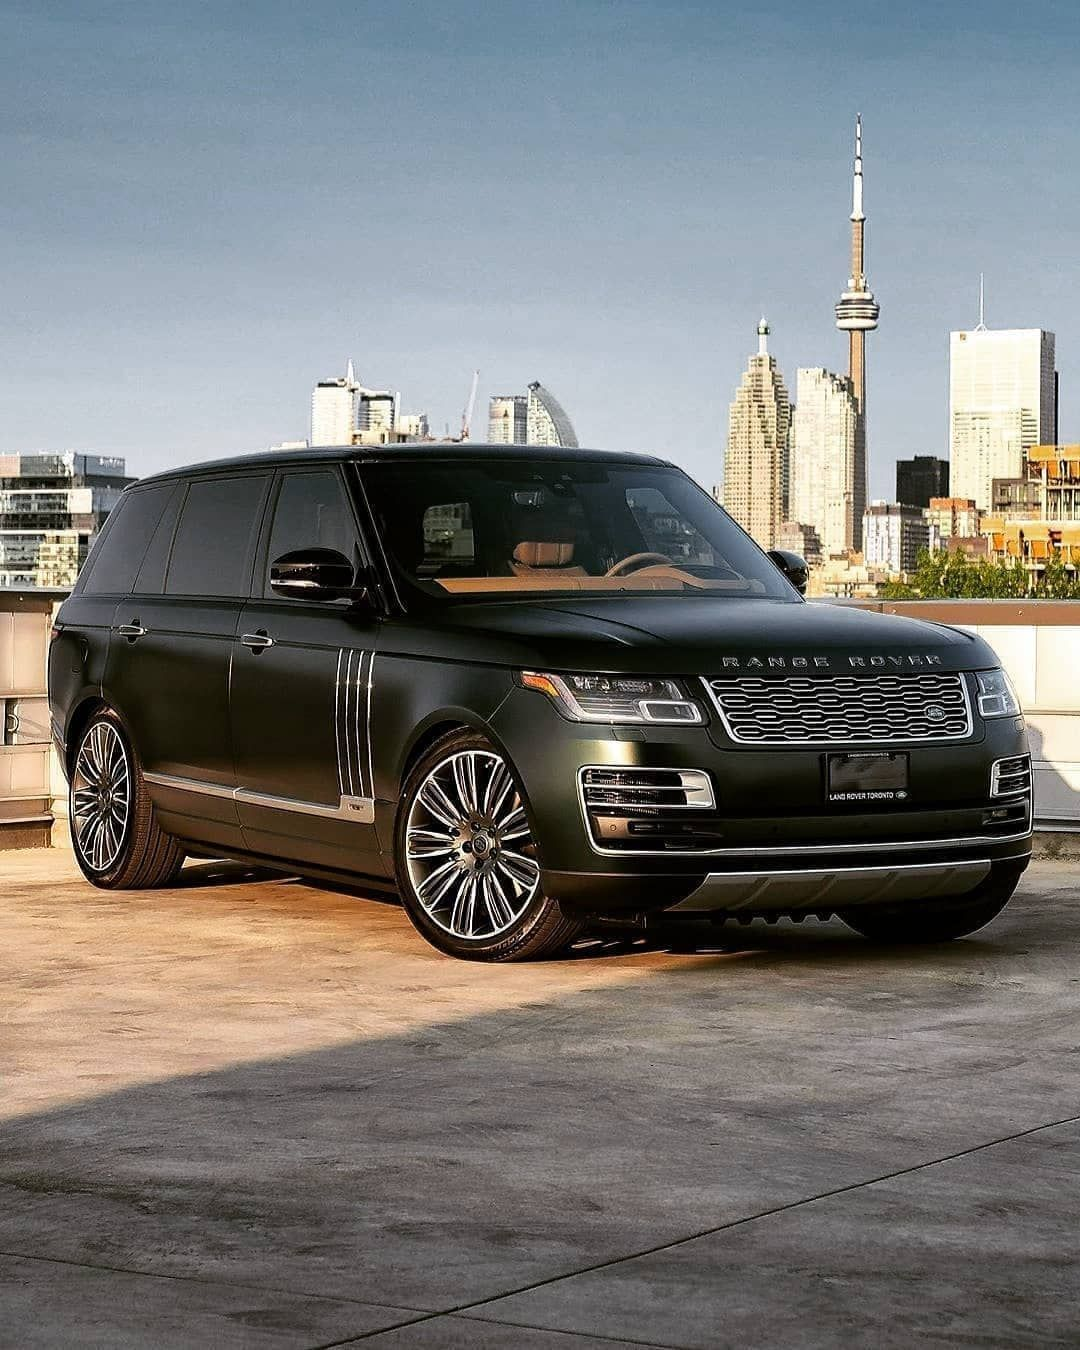 Luxuryinteriorz Akiel On Instagram What Are Your Thoughts On This Let Me Know In The Comments Luxury Cars Range Rover Range Rover Best Suv